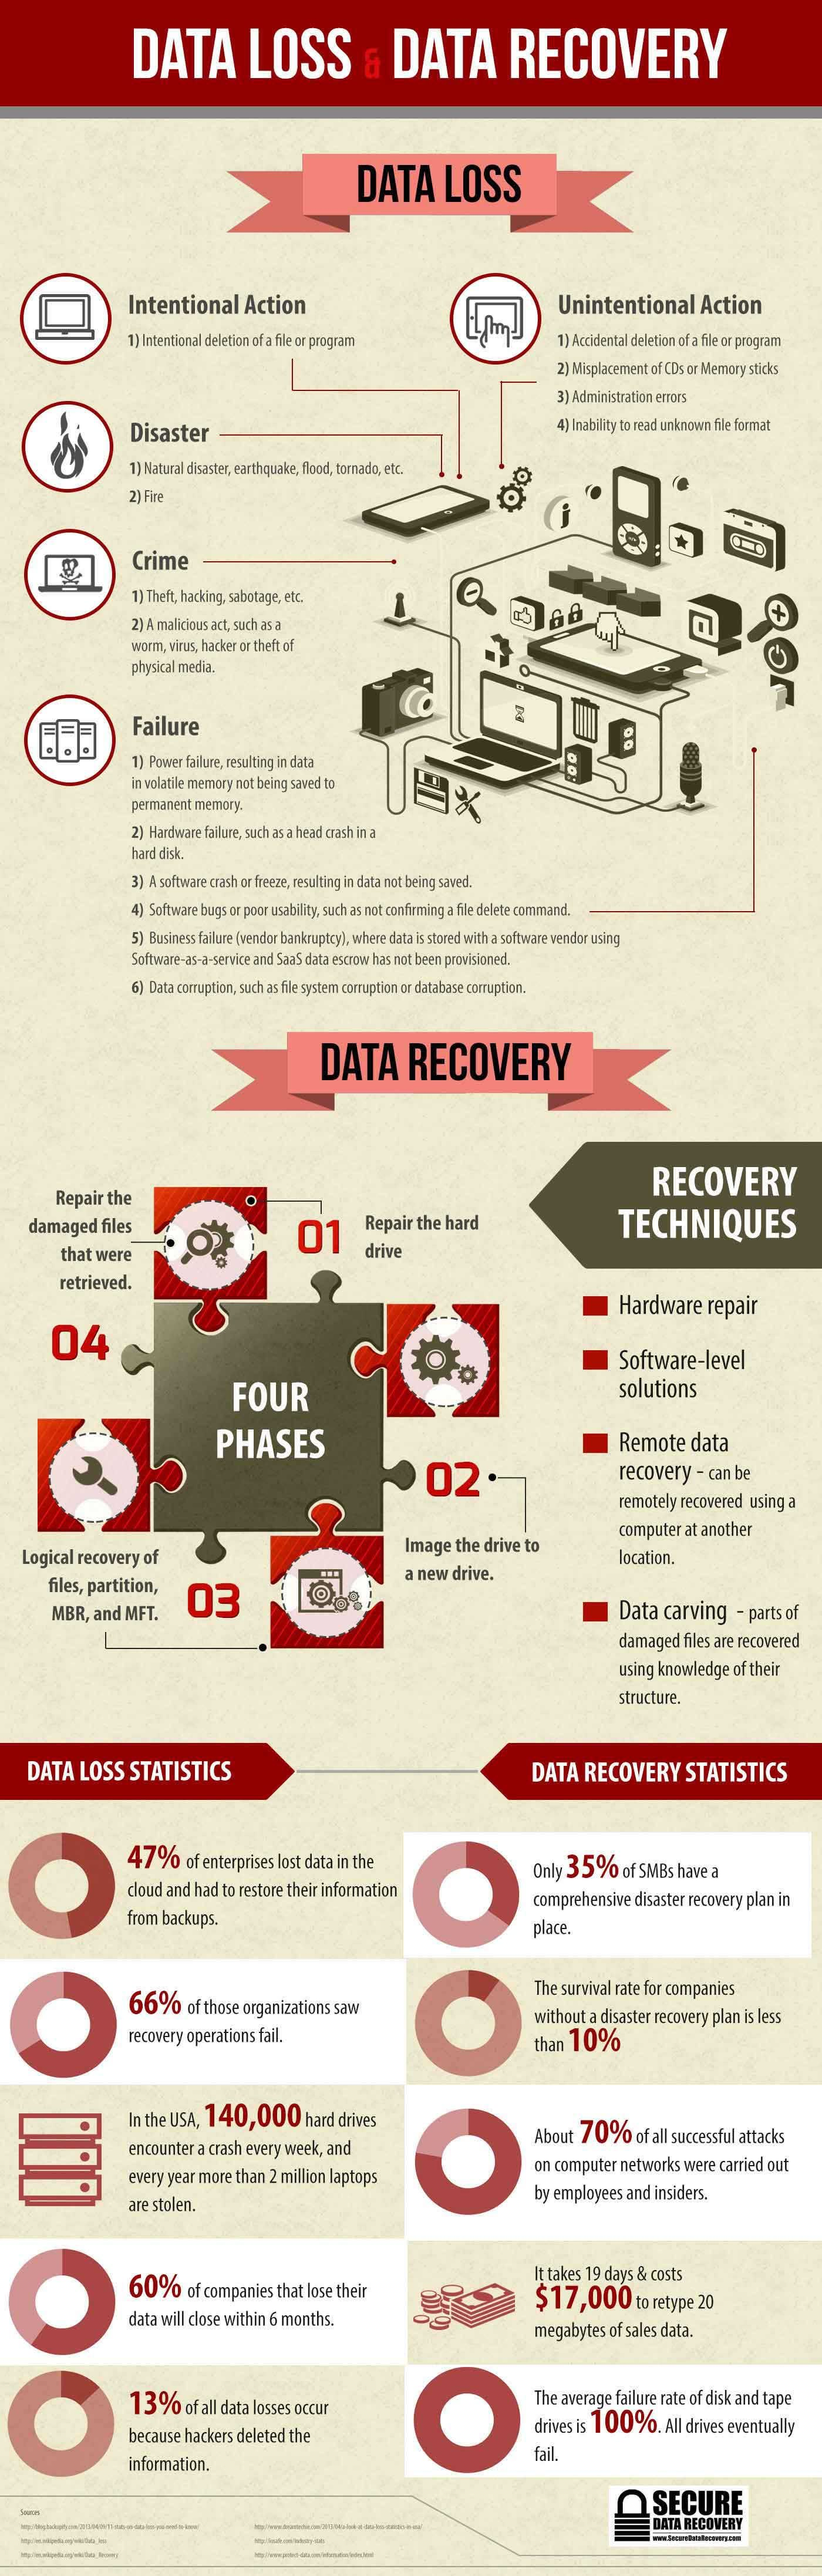 what is data recovery information technology essay What is data recovery information technology essay february 8, 2018 admin any br leave a comment in digital computers software testing is considered as old as the hills in the history of this world.